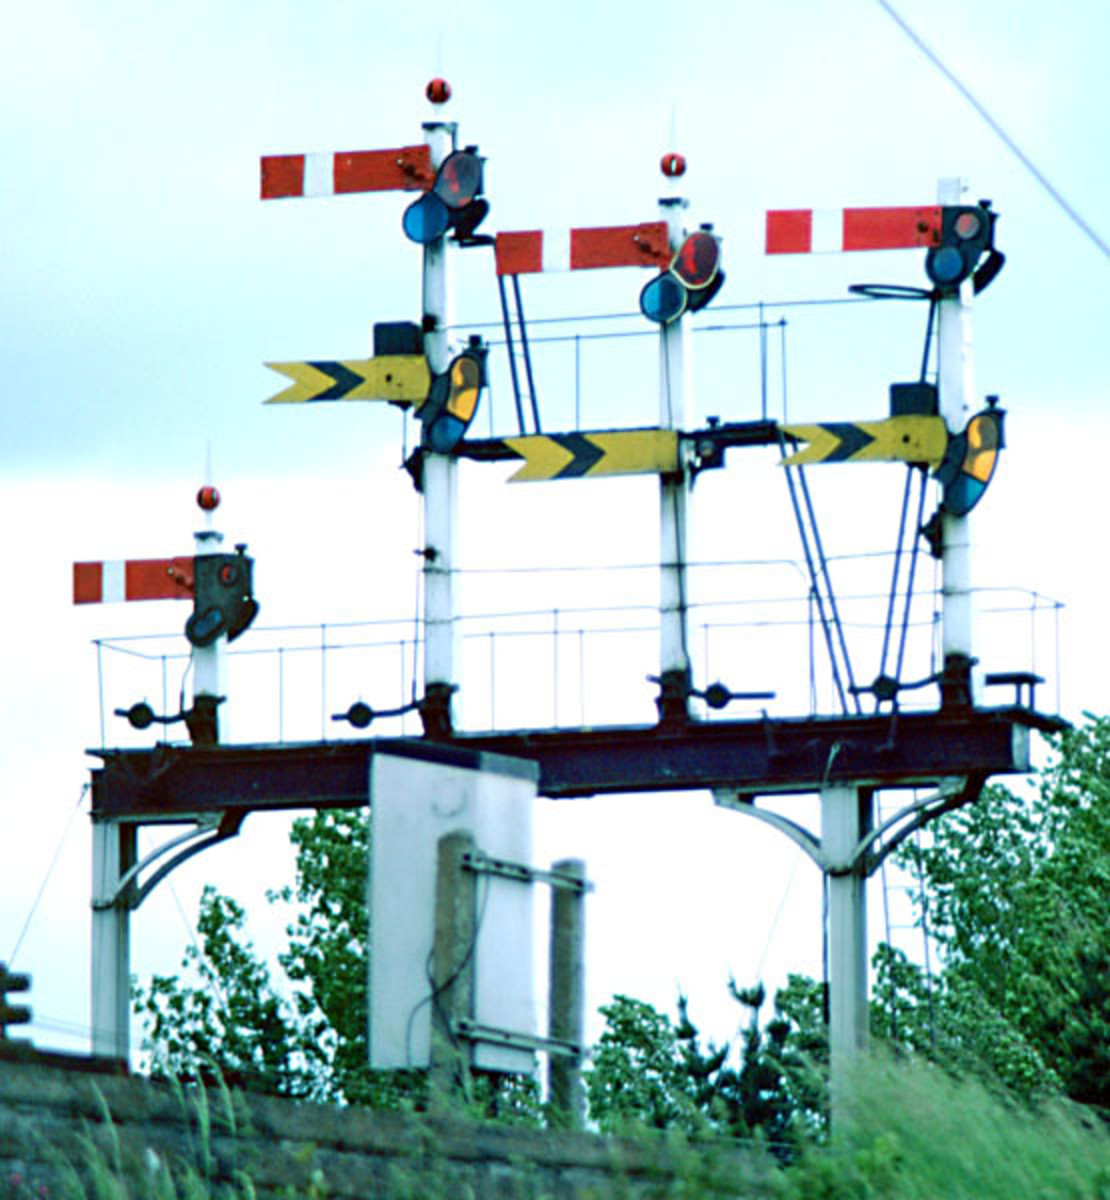 A short gantry of semi-distant semaphore signals for one direction of travel, i.e., home signal above distant